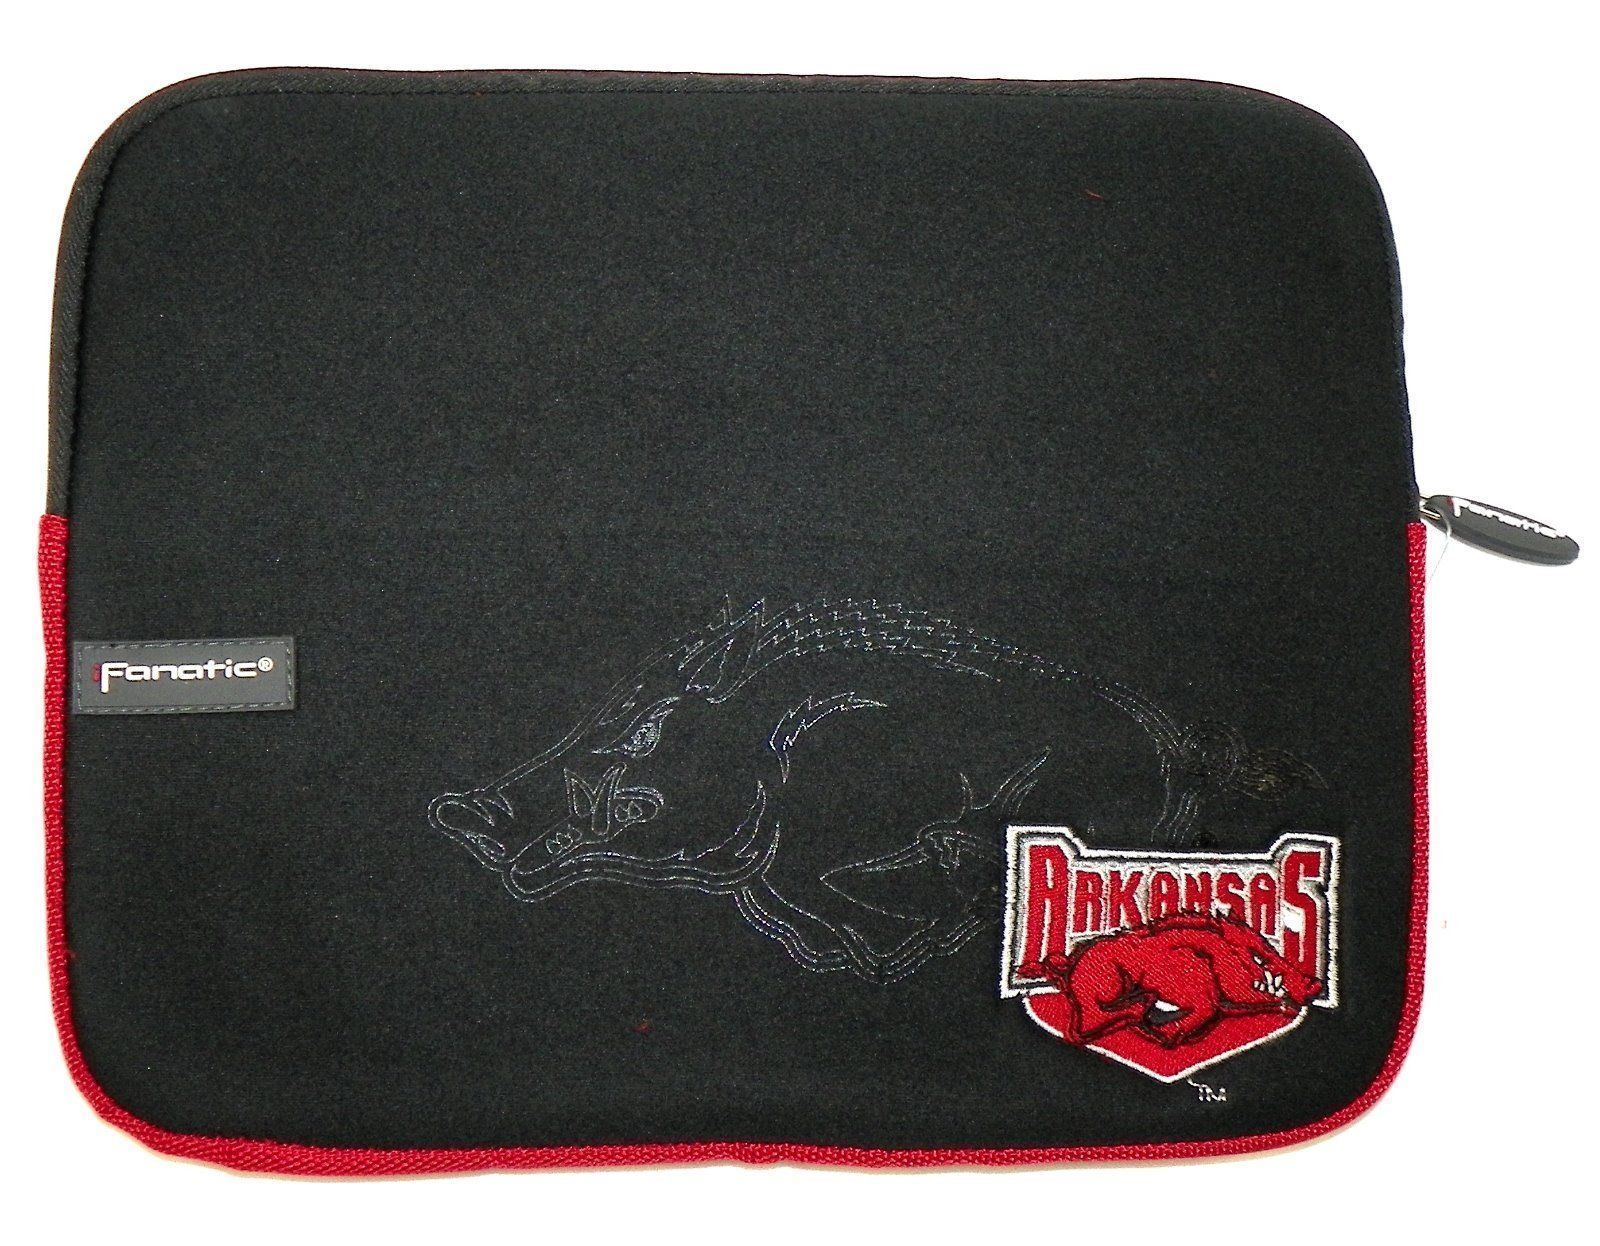 "Arkansas Razorbacks Tablet Computer Sleeve Case Soft Top Universal 11"" x 8.5"""